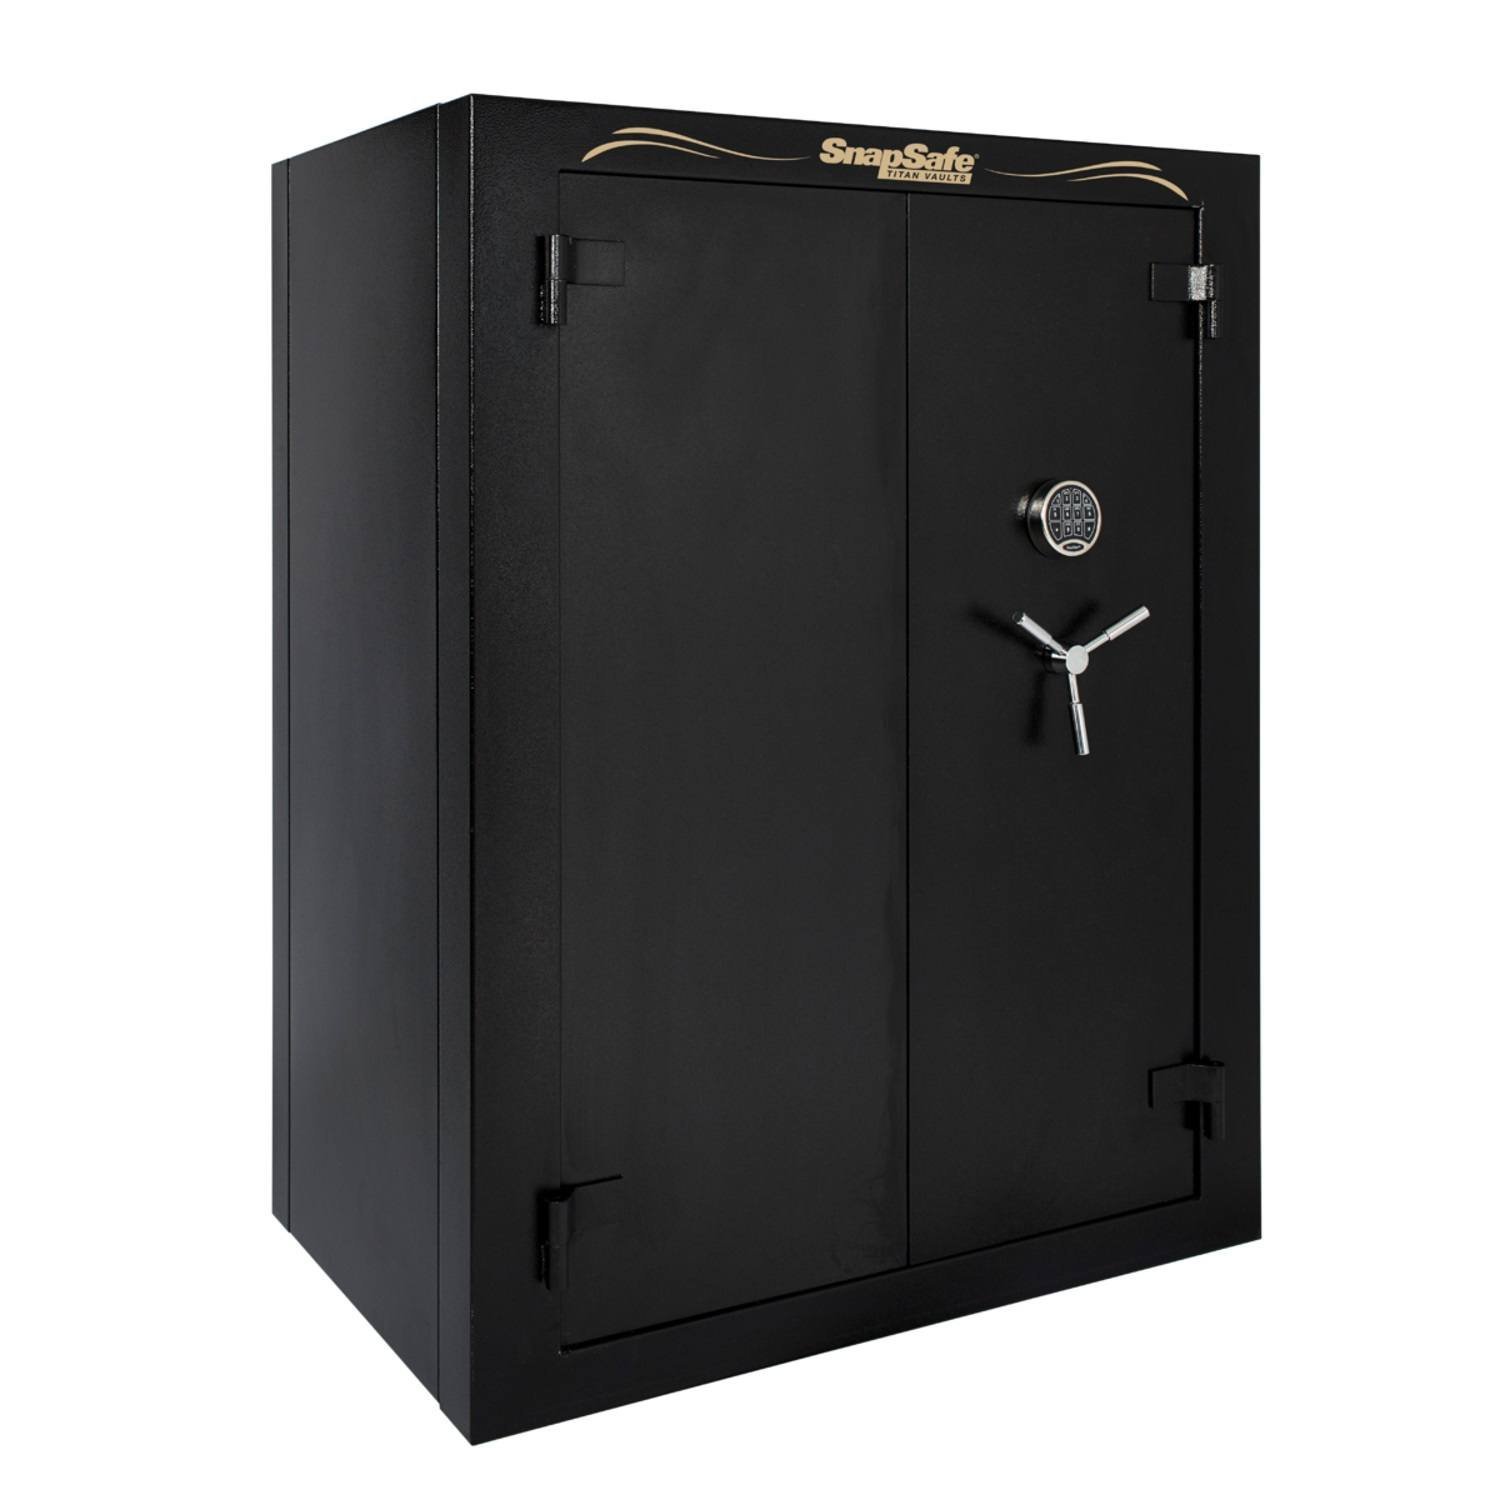 SnapSafe Super Titan Double Door Digital Modular Safe, 59'' H x 46'' W x 30'' D- Matte Black by SnapSafe